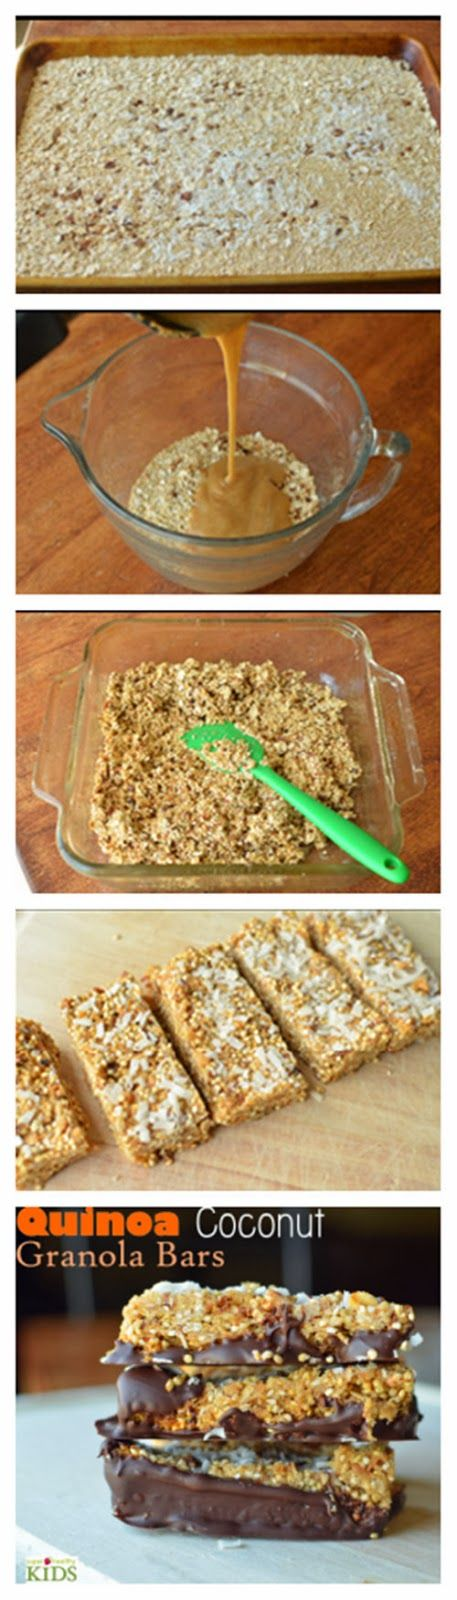 Quinoa Coconut Granola Bars     1 cup cooked quinoa     1 cup quick oats     1/2 teaspoon cinnamon     1/2 teaspoon nutmeg     3 tablespoons brown sugar     1 tablespoon granulated sugar     1 tablespoon maple syrup     1 cup chopped apples      2 eggs, lightly beaten